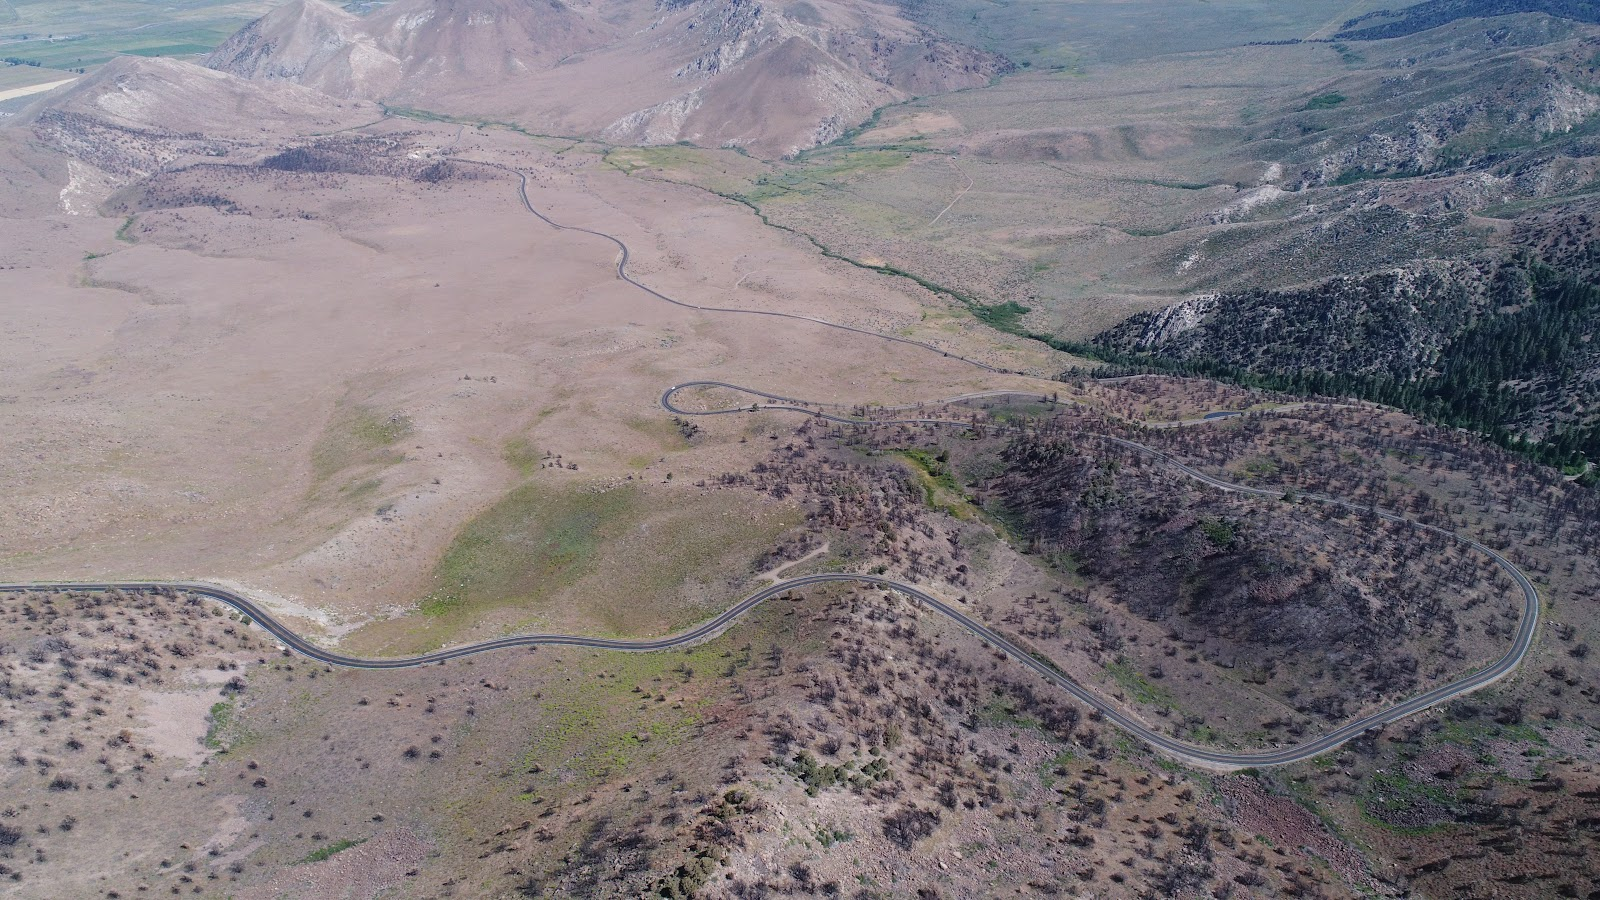 Bike climb of Monitor Pass East  - aerial drone photo of Hwy 89